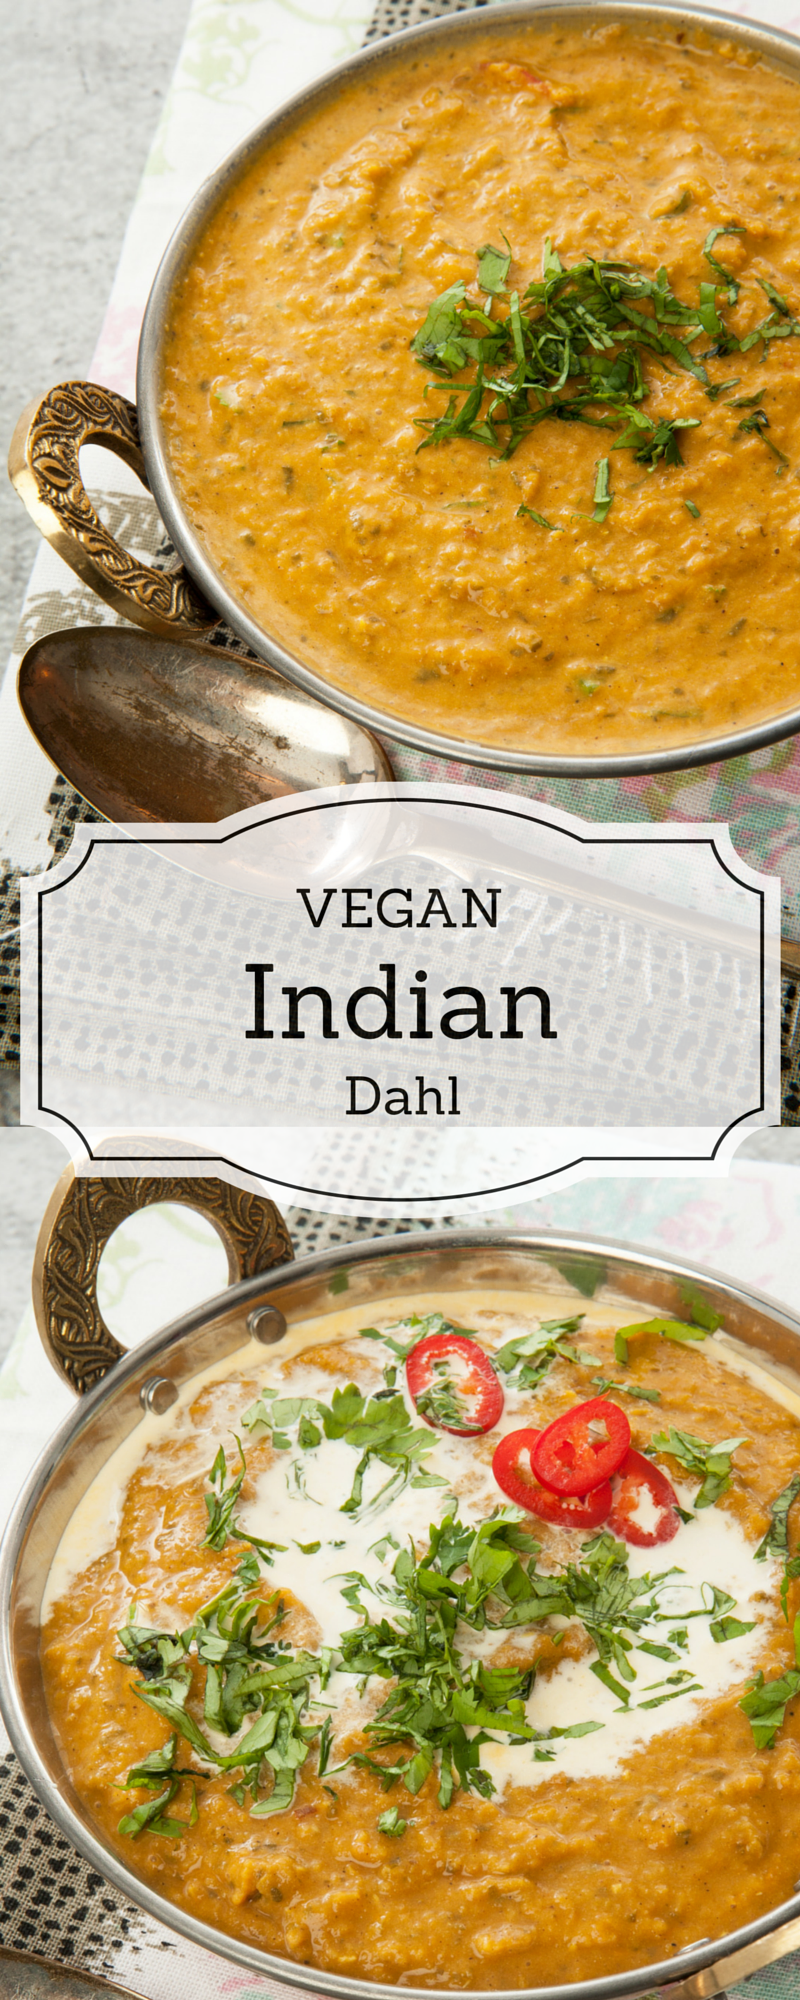 Vegan Indian Dahl - Spicy Aromatic Lentil Curry - EASY ...